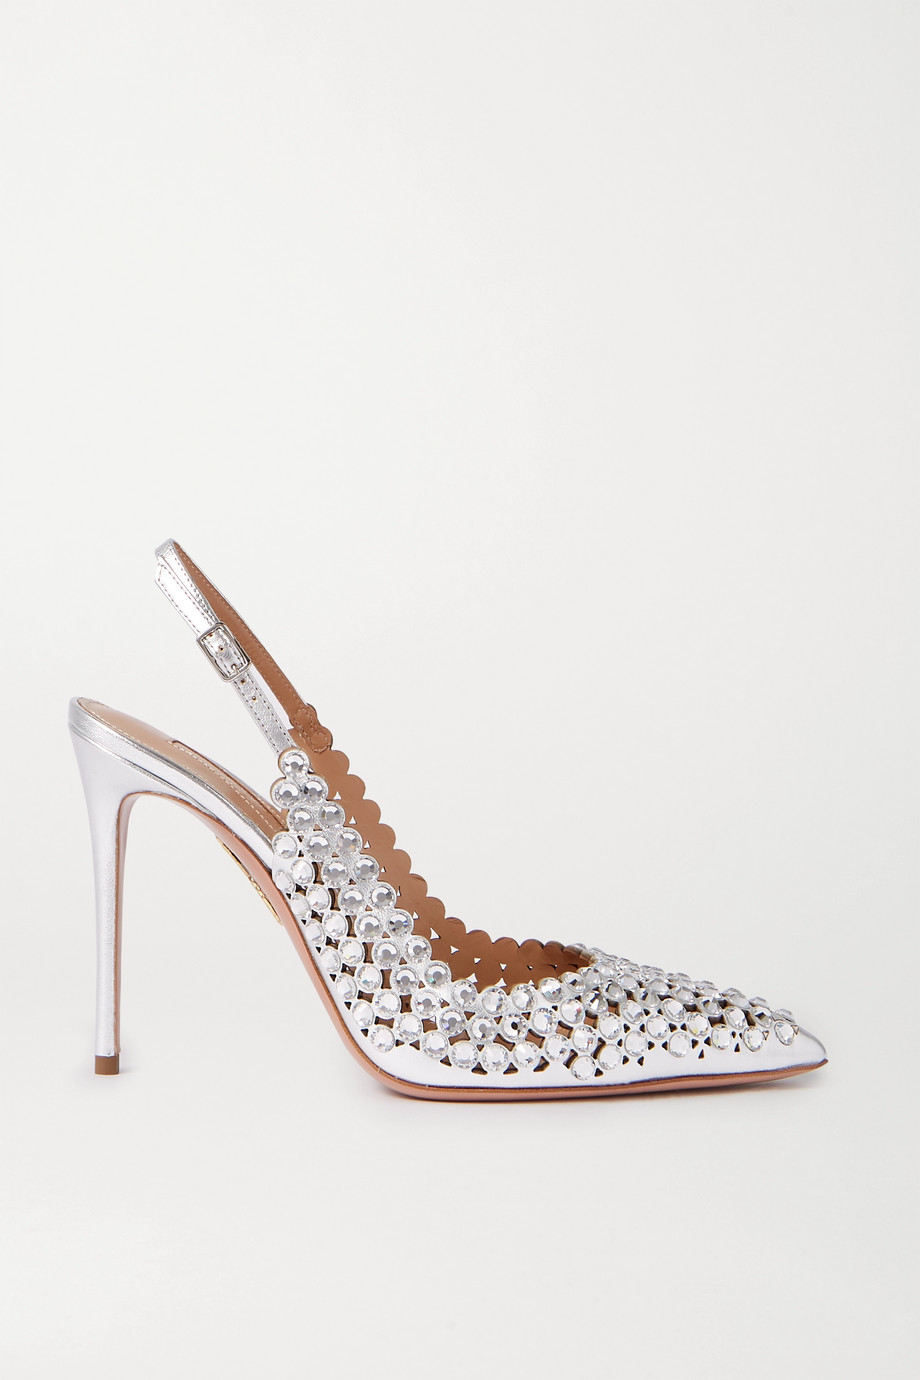 Aquazzura Tequila 105 crystal-embellished metallic leather slingback pumps